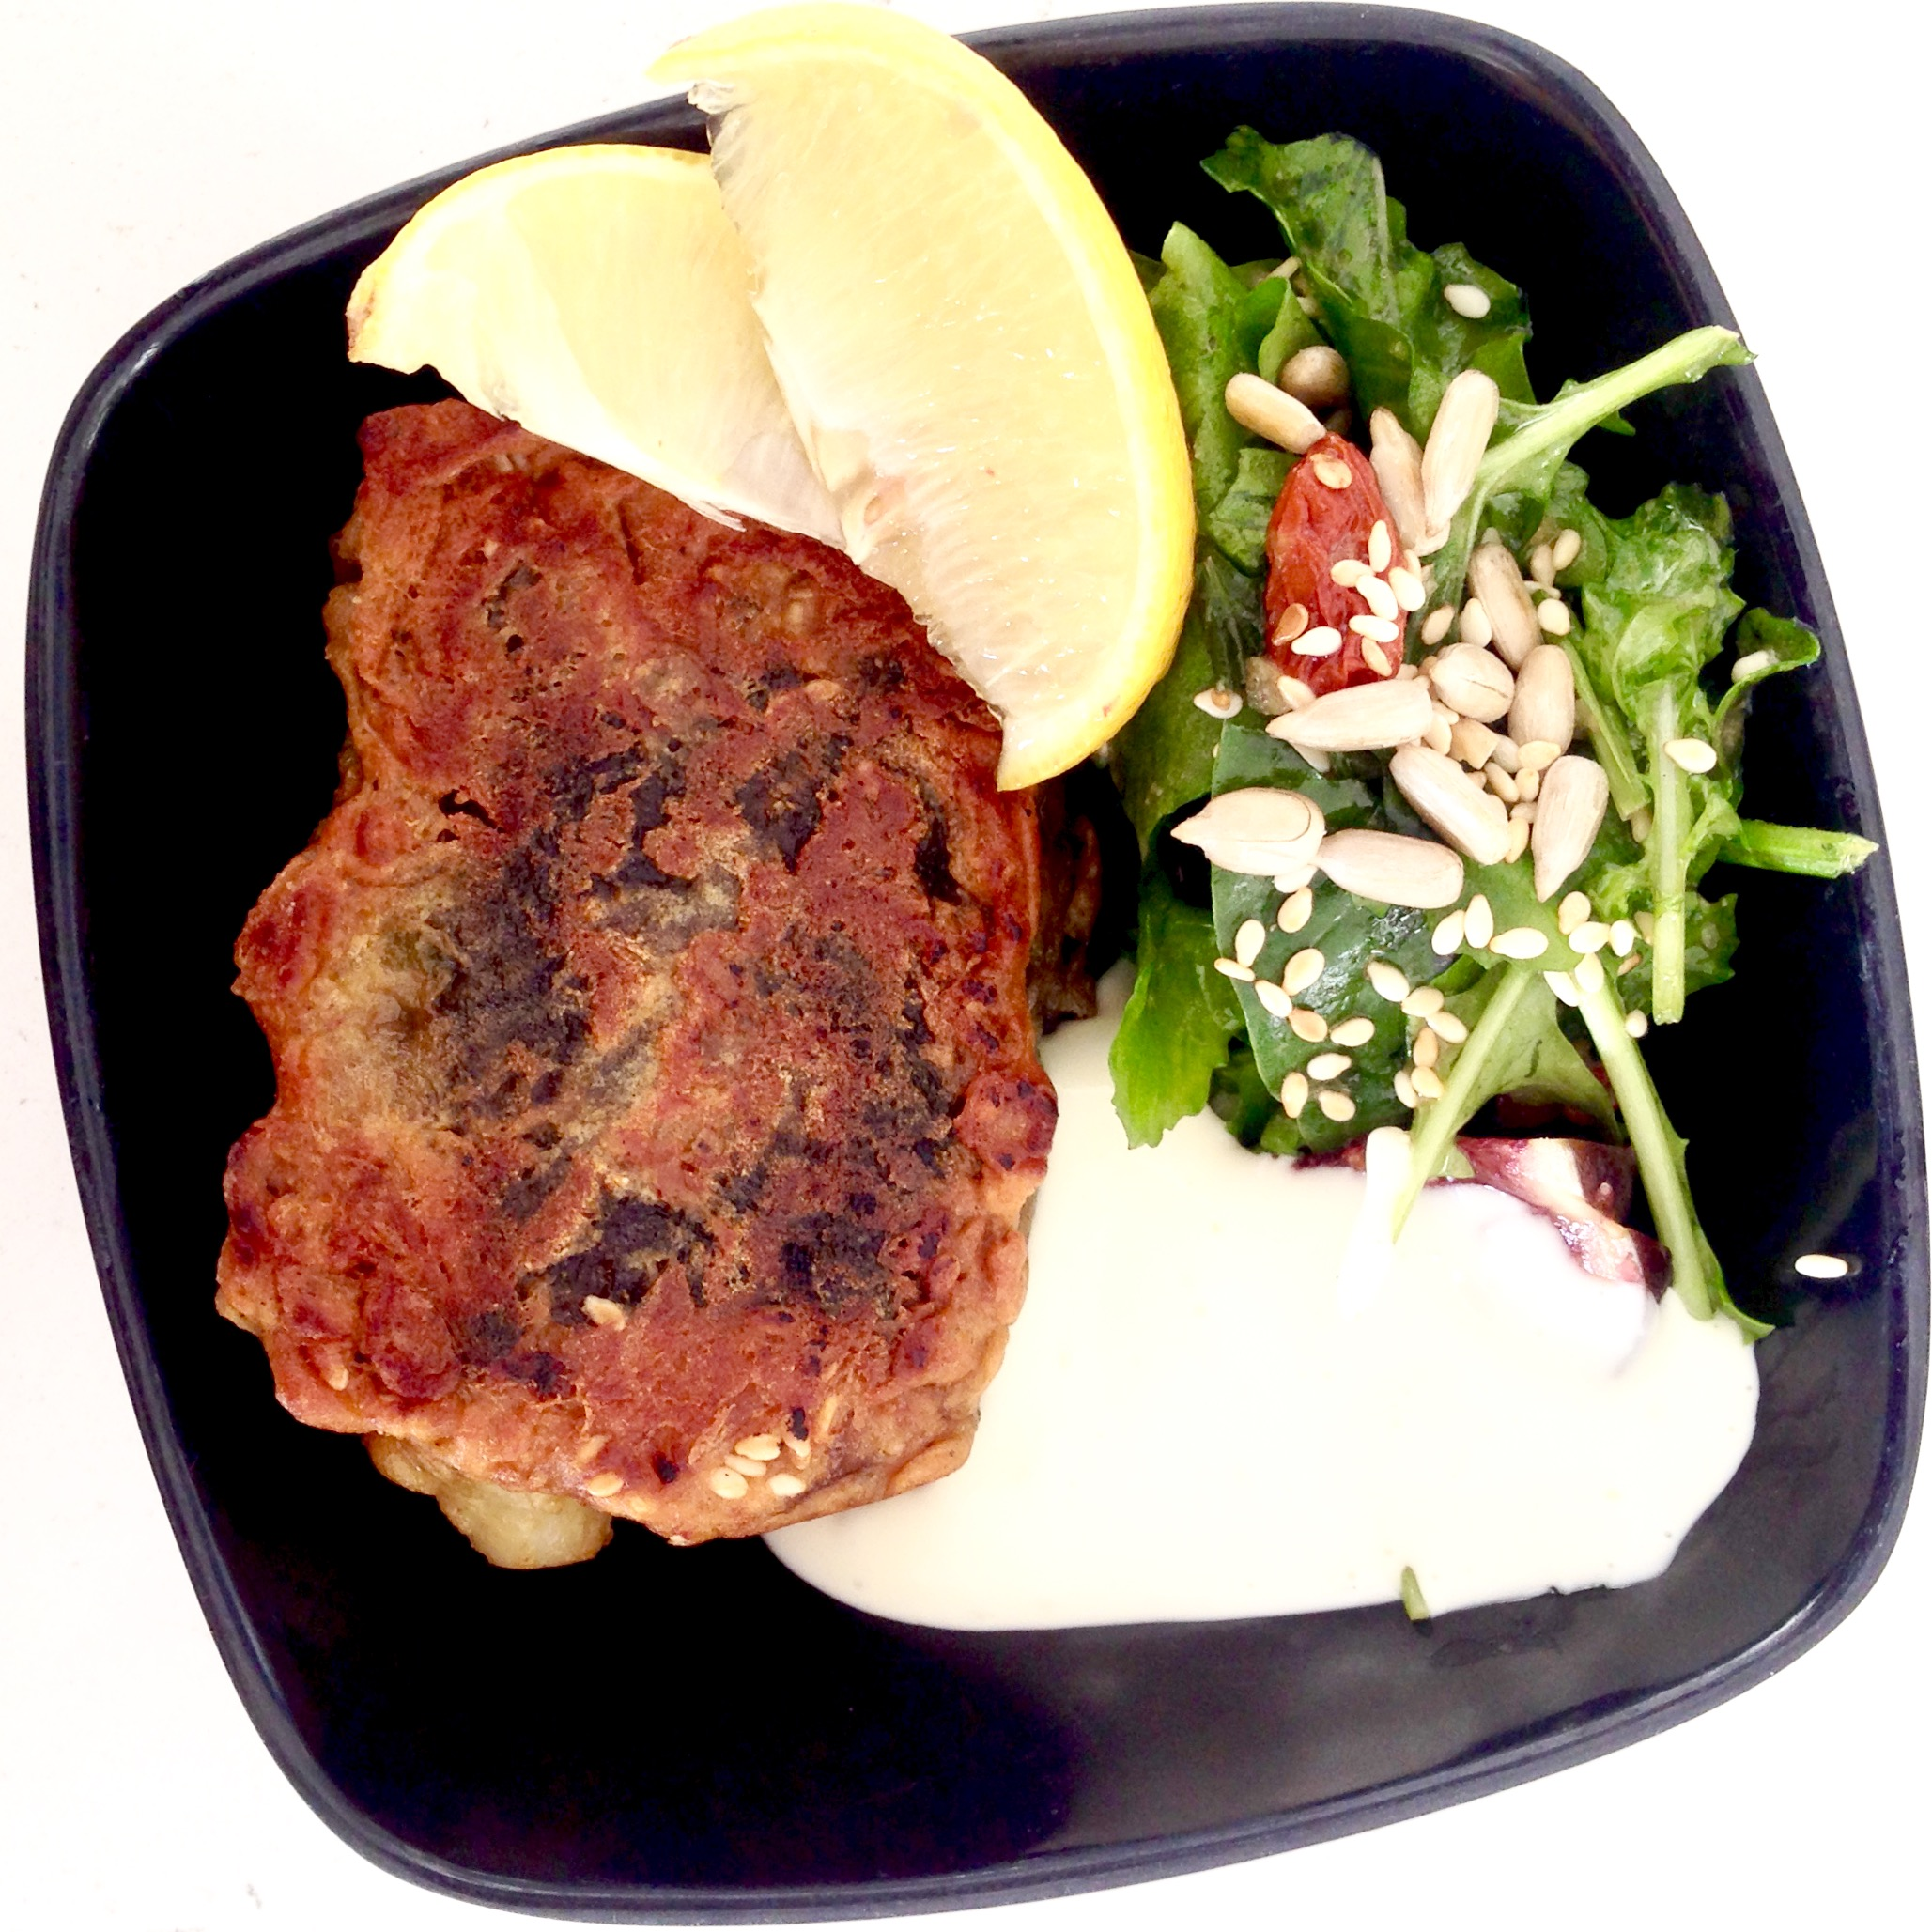 """Battered """"Fish"""" with Side Salad & Aioli"""